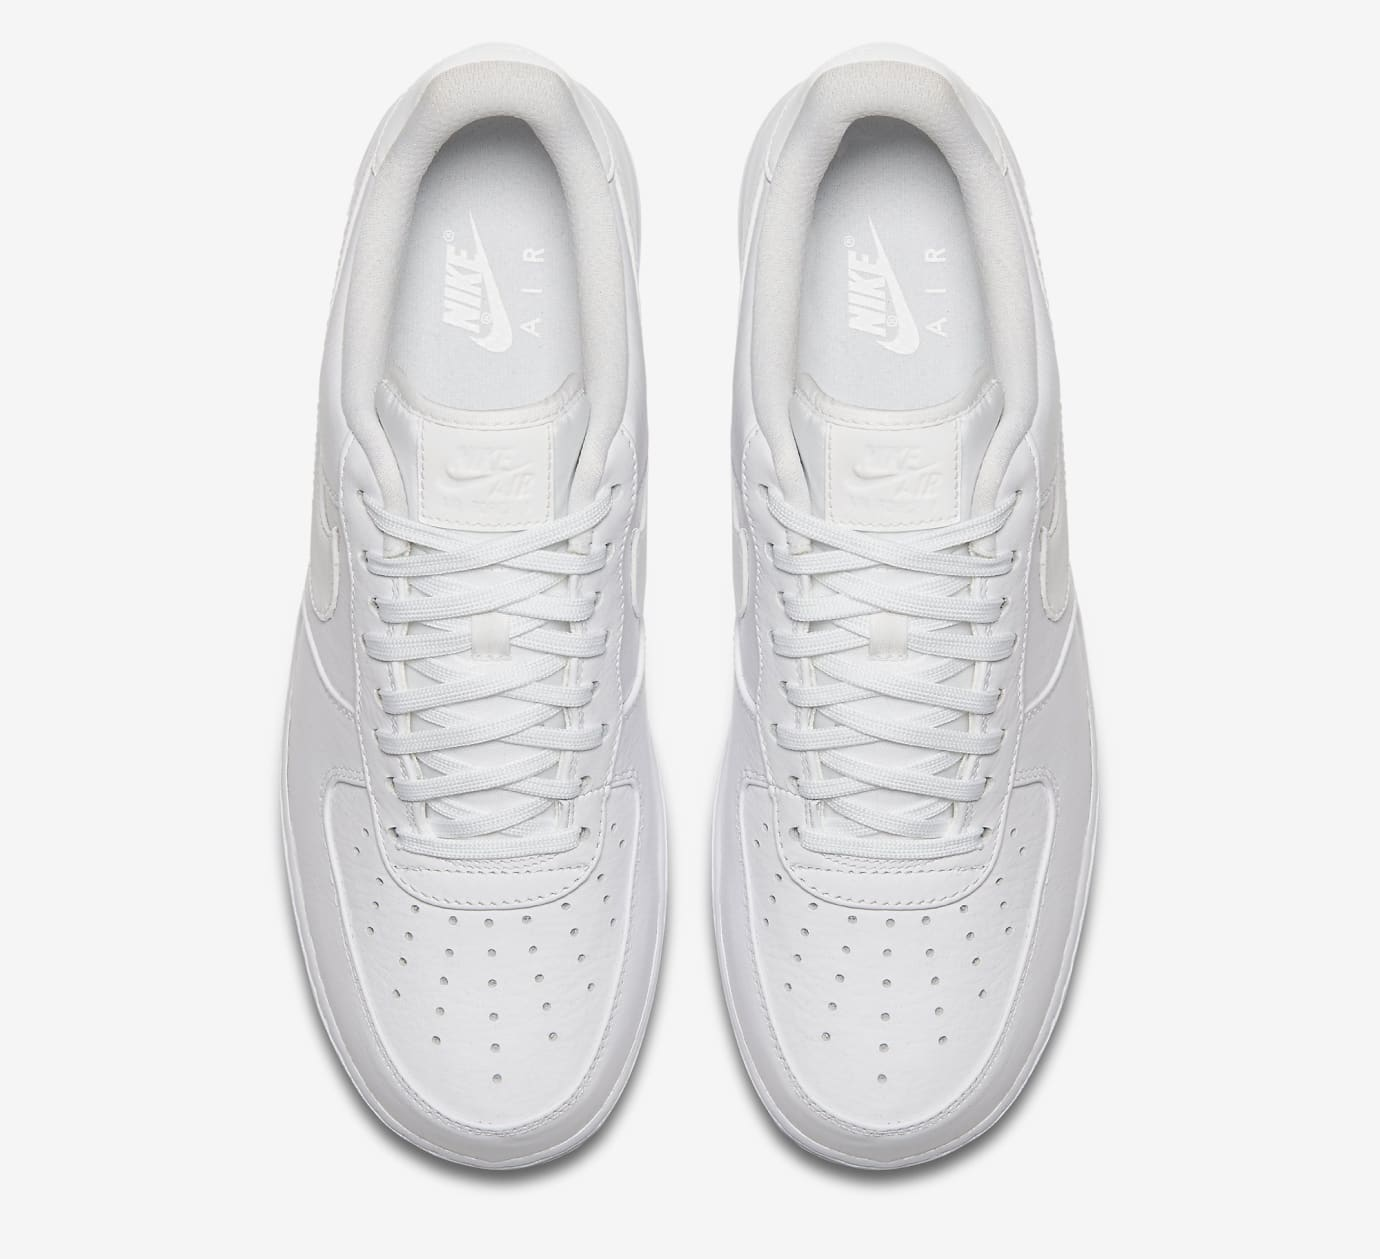 Nike Air Force 1 White Reflective 905345-100 Top